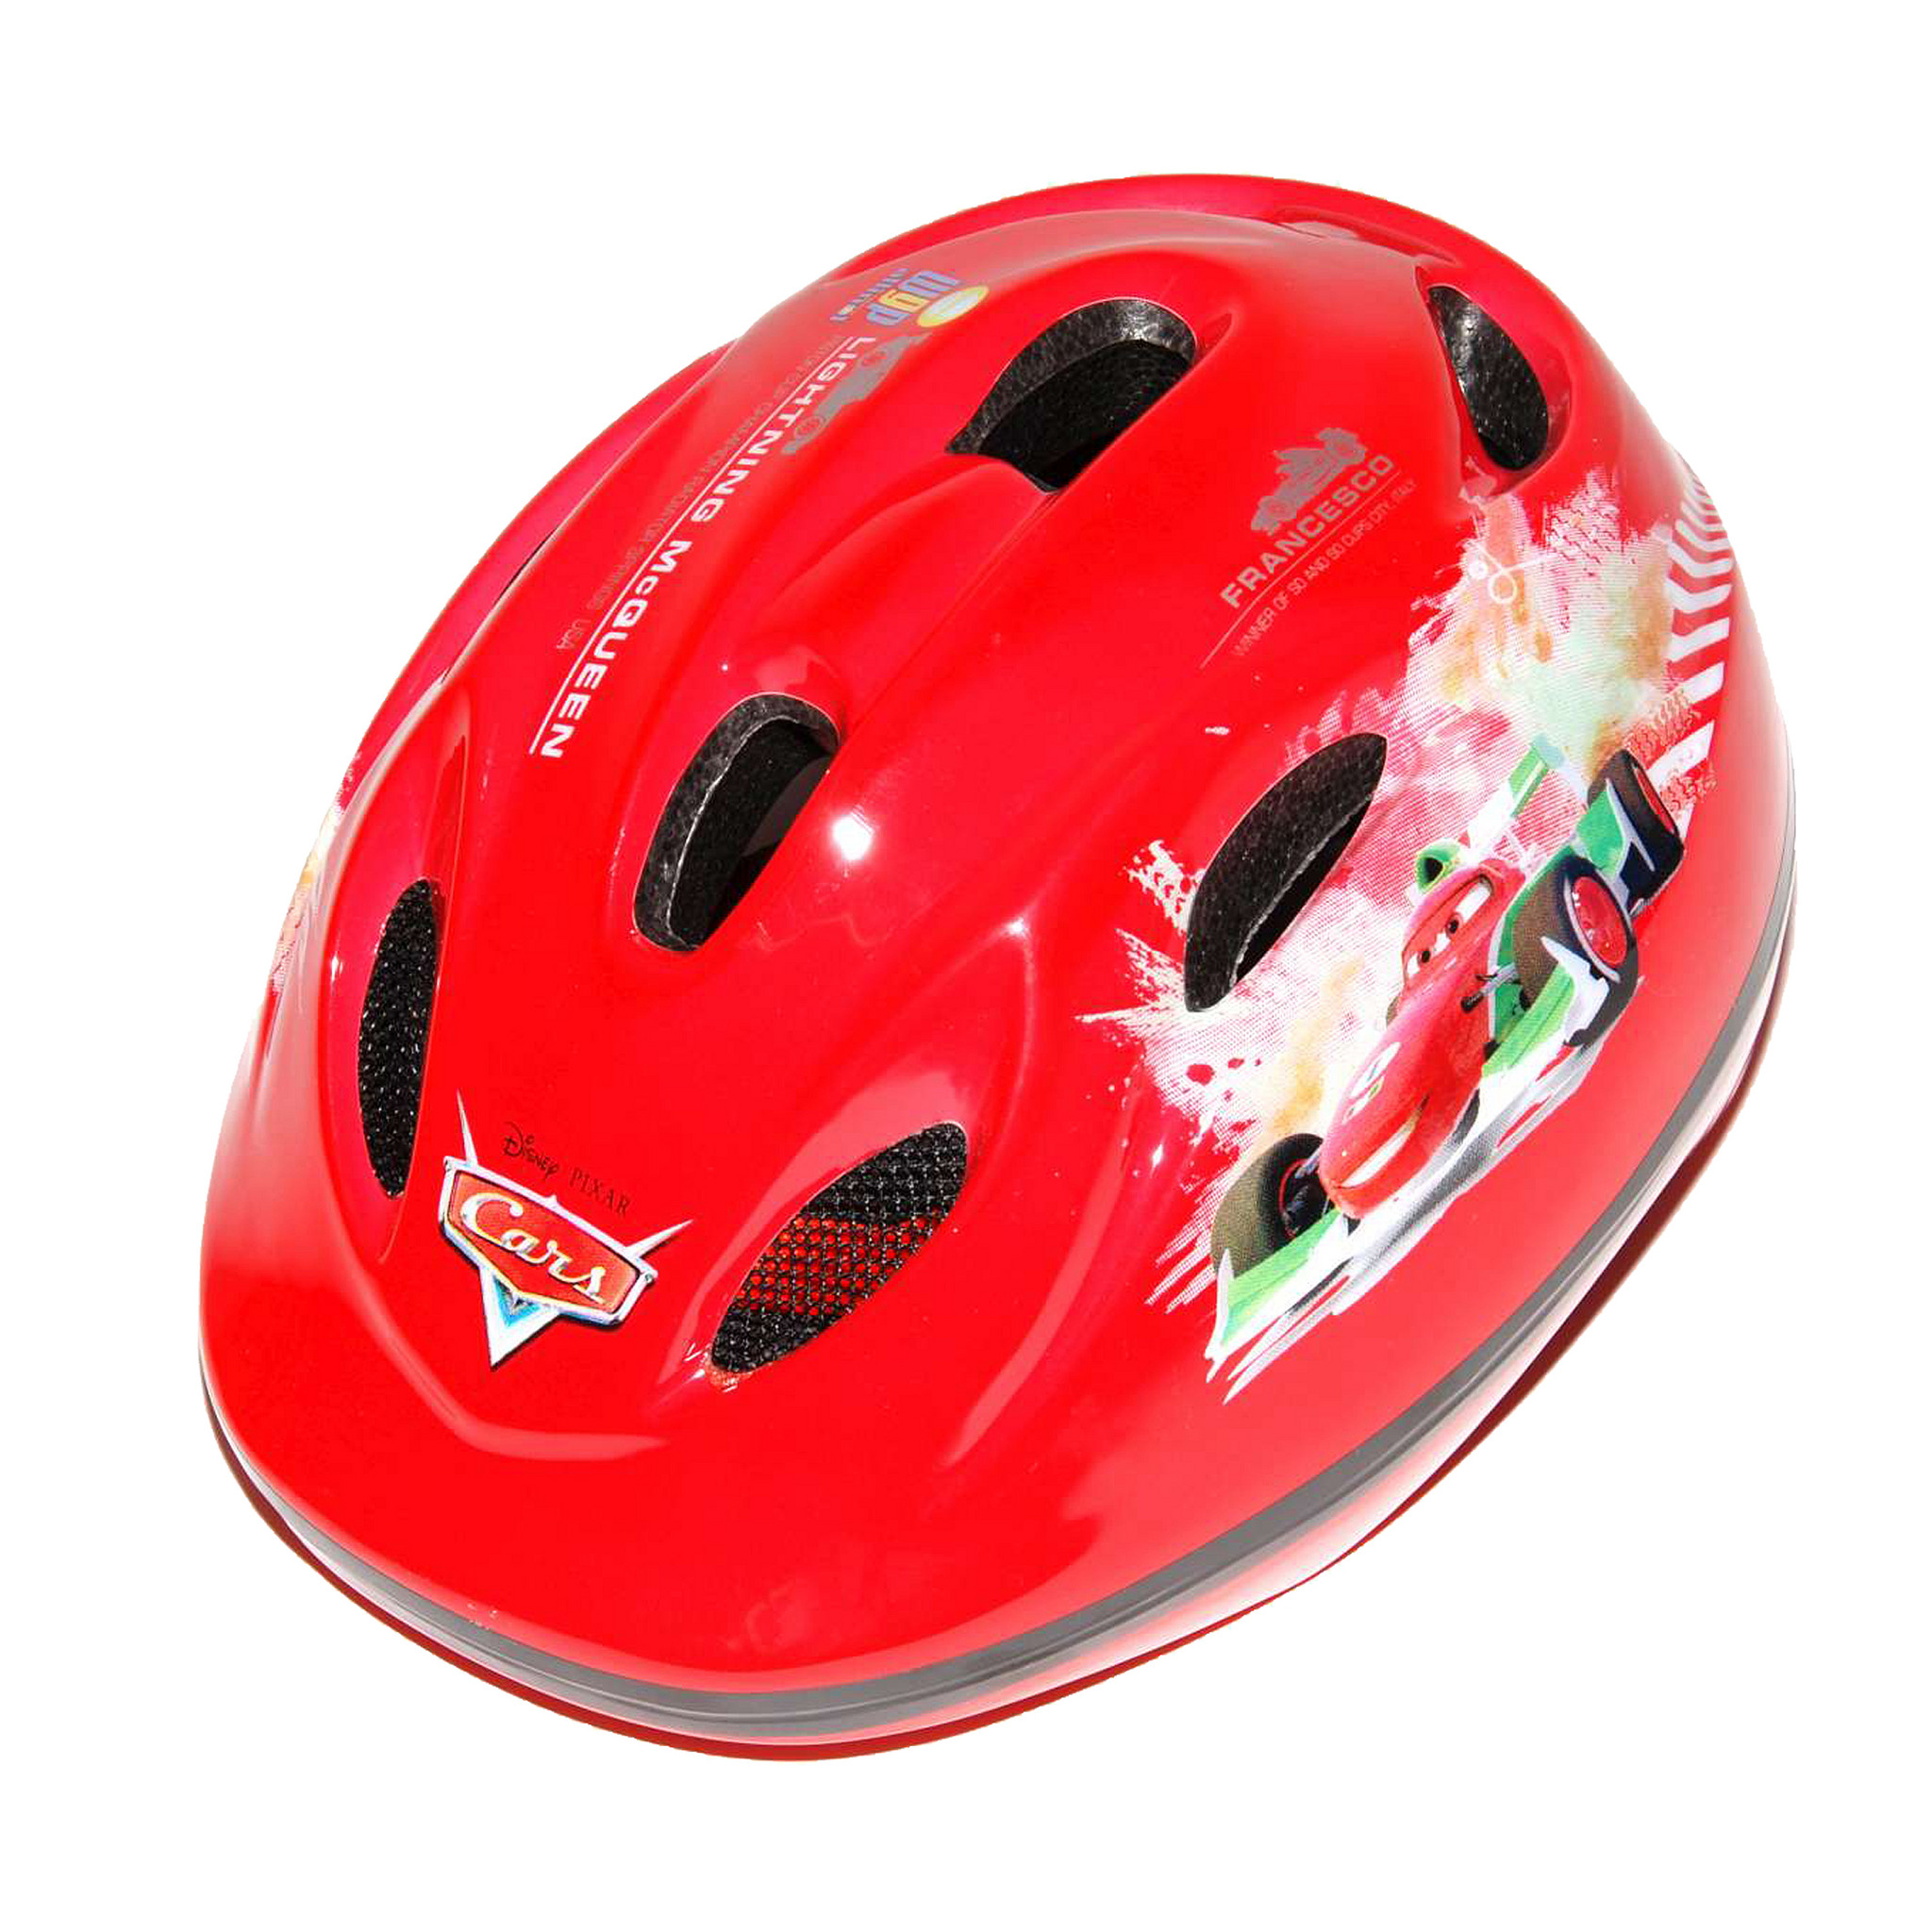 Disney Fietshelm kind Cars rood 51 55